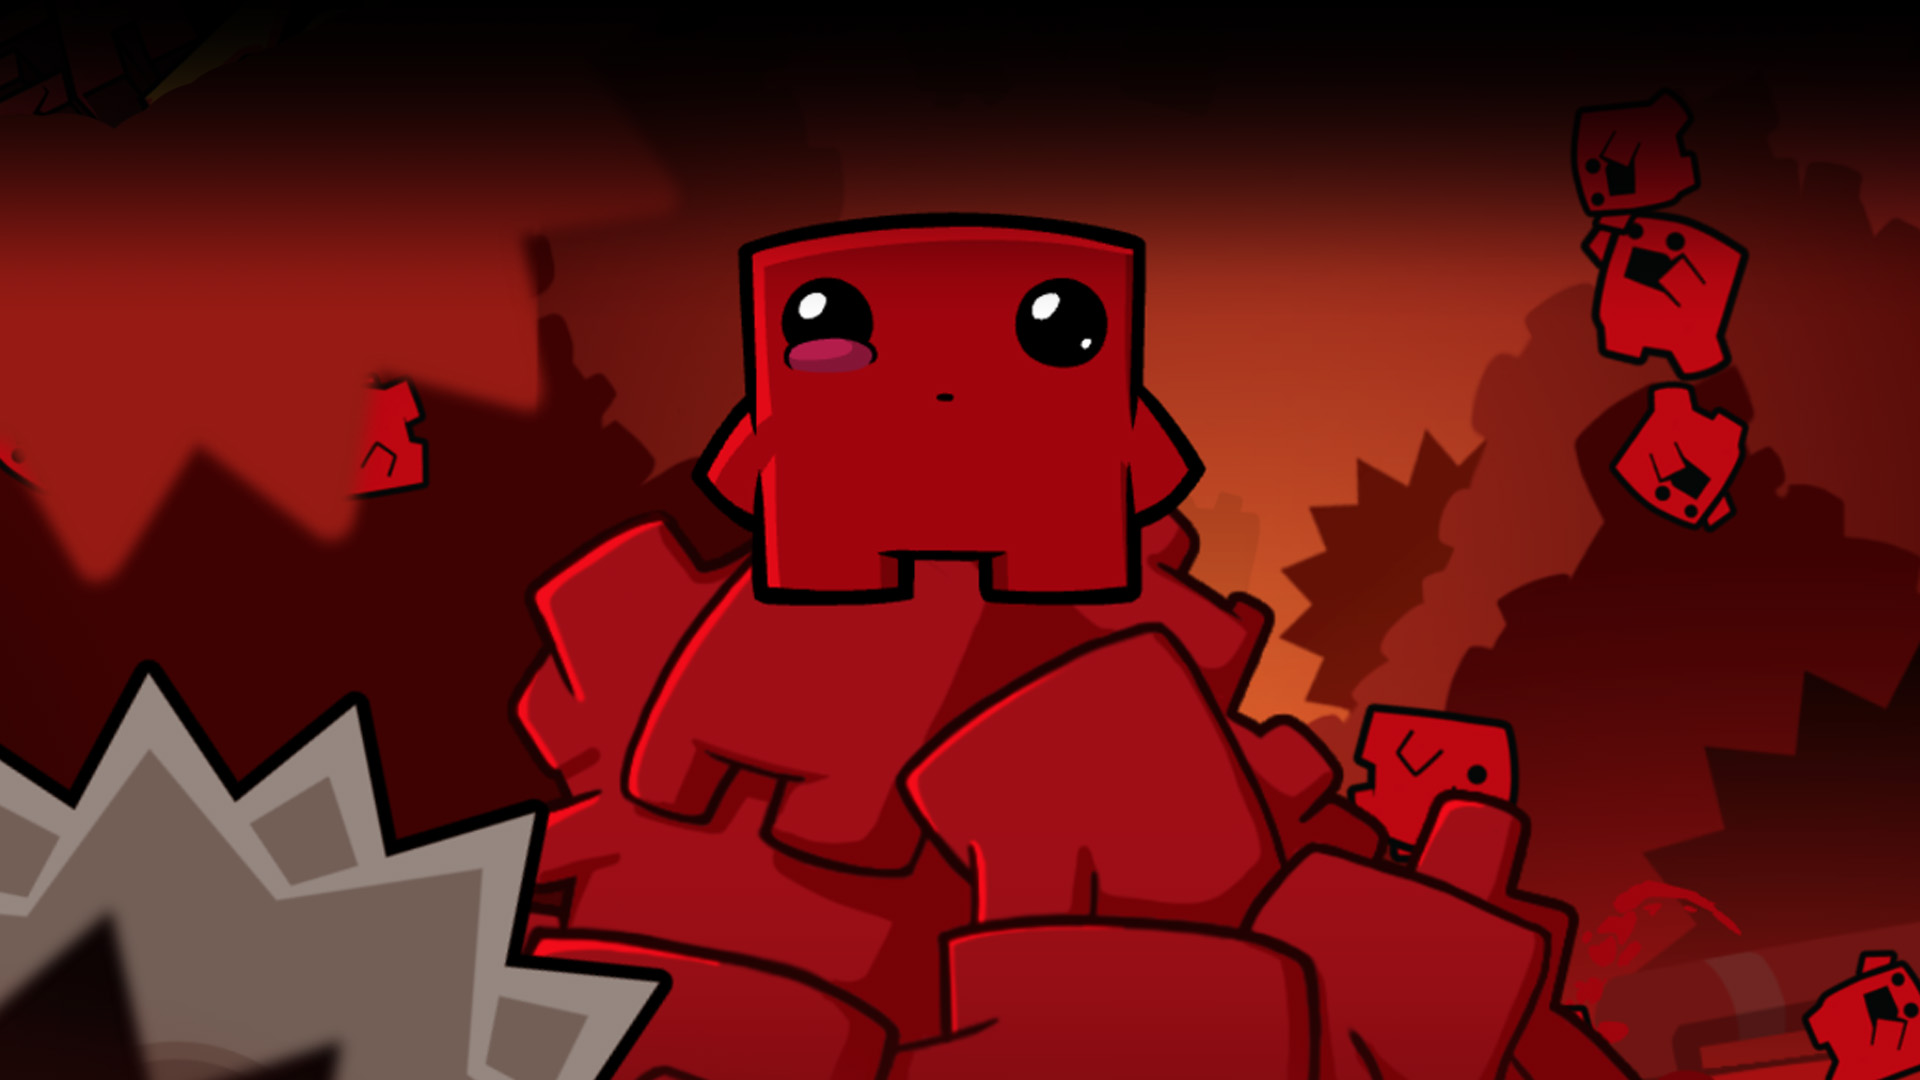 Super Meat Boy Forever Hd Wallpaper Background Image 1920x1080